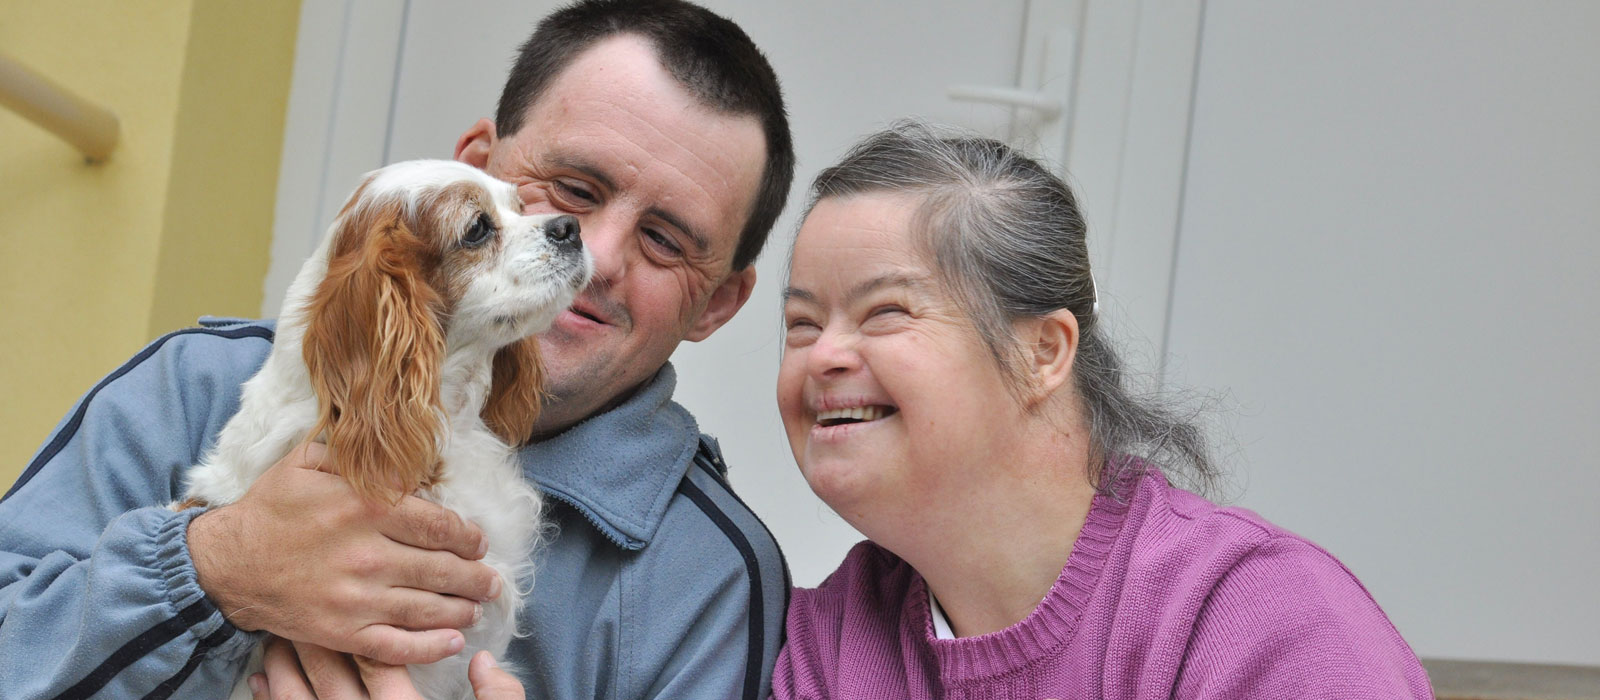 Disability Care in the home